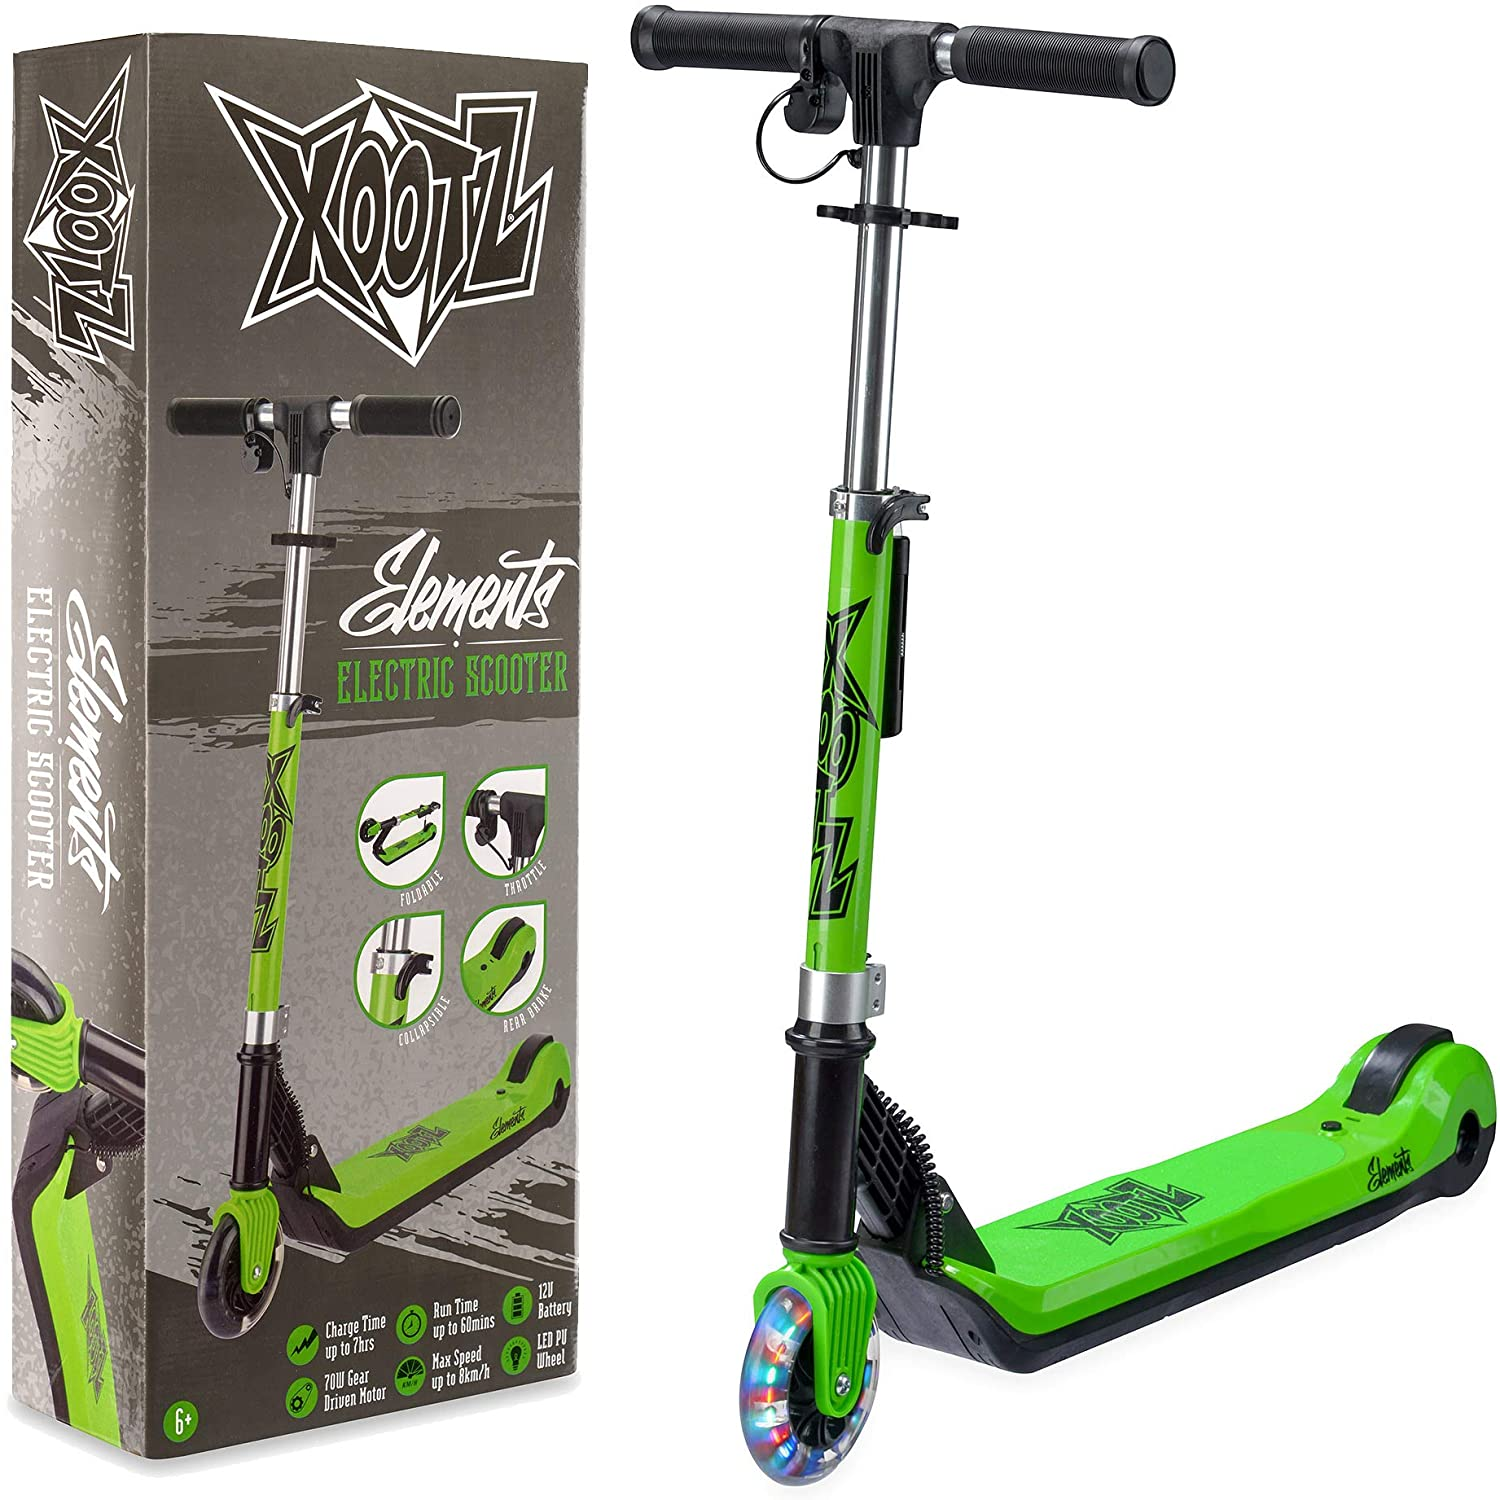 Kids Electric Scooter Folding with LED Light Up Wheel